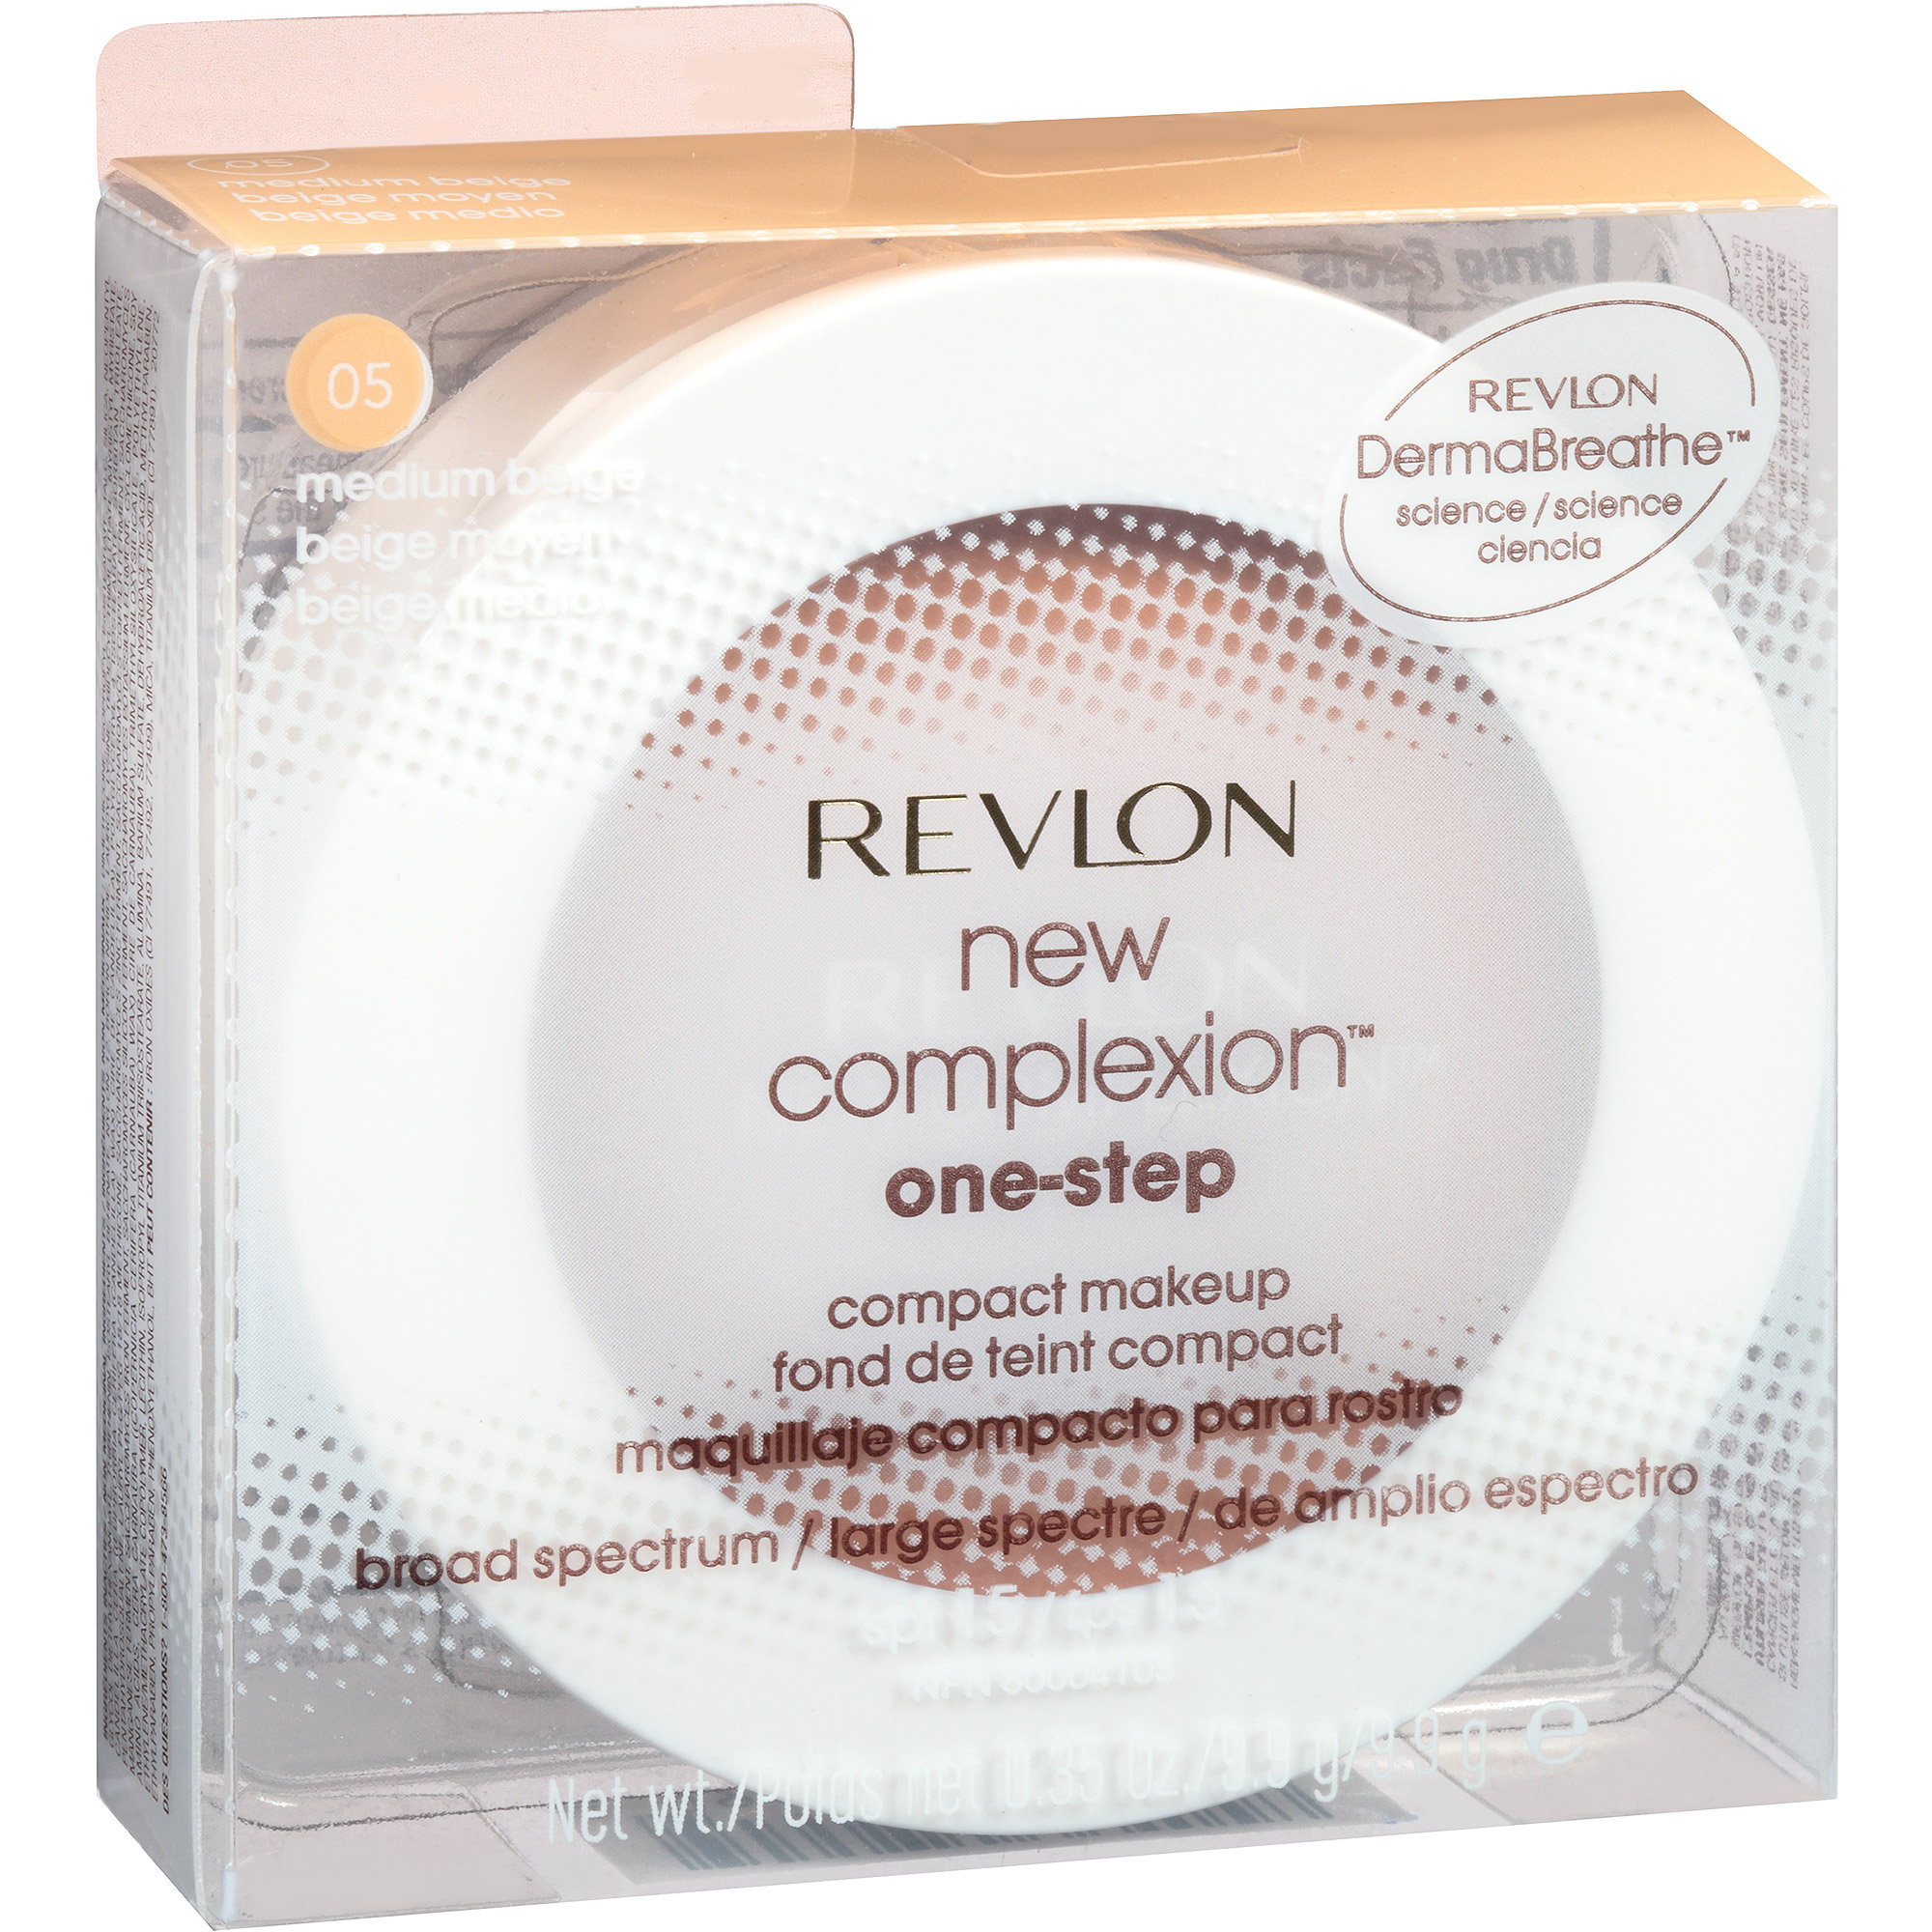 Revlon New Complexion One-Step Compact Makeup, 05 Medium Beige, 0.35 oz